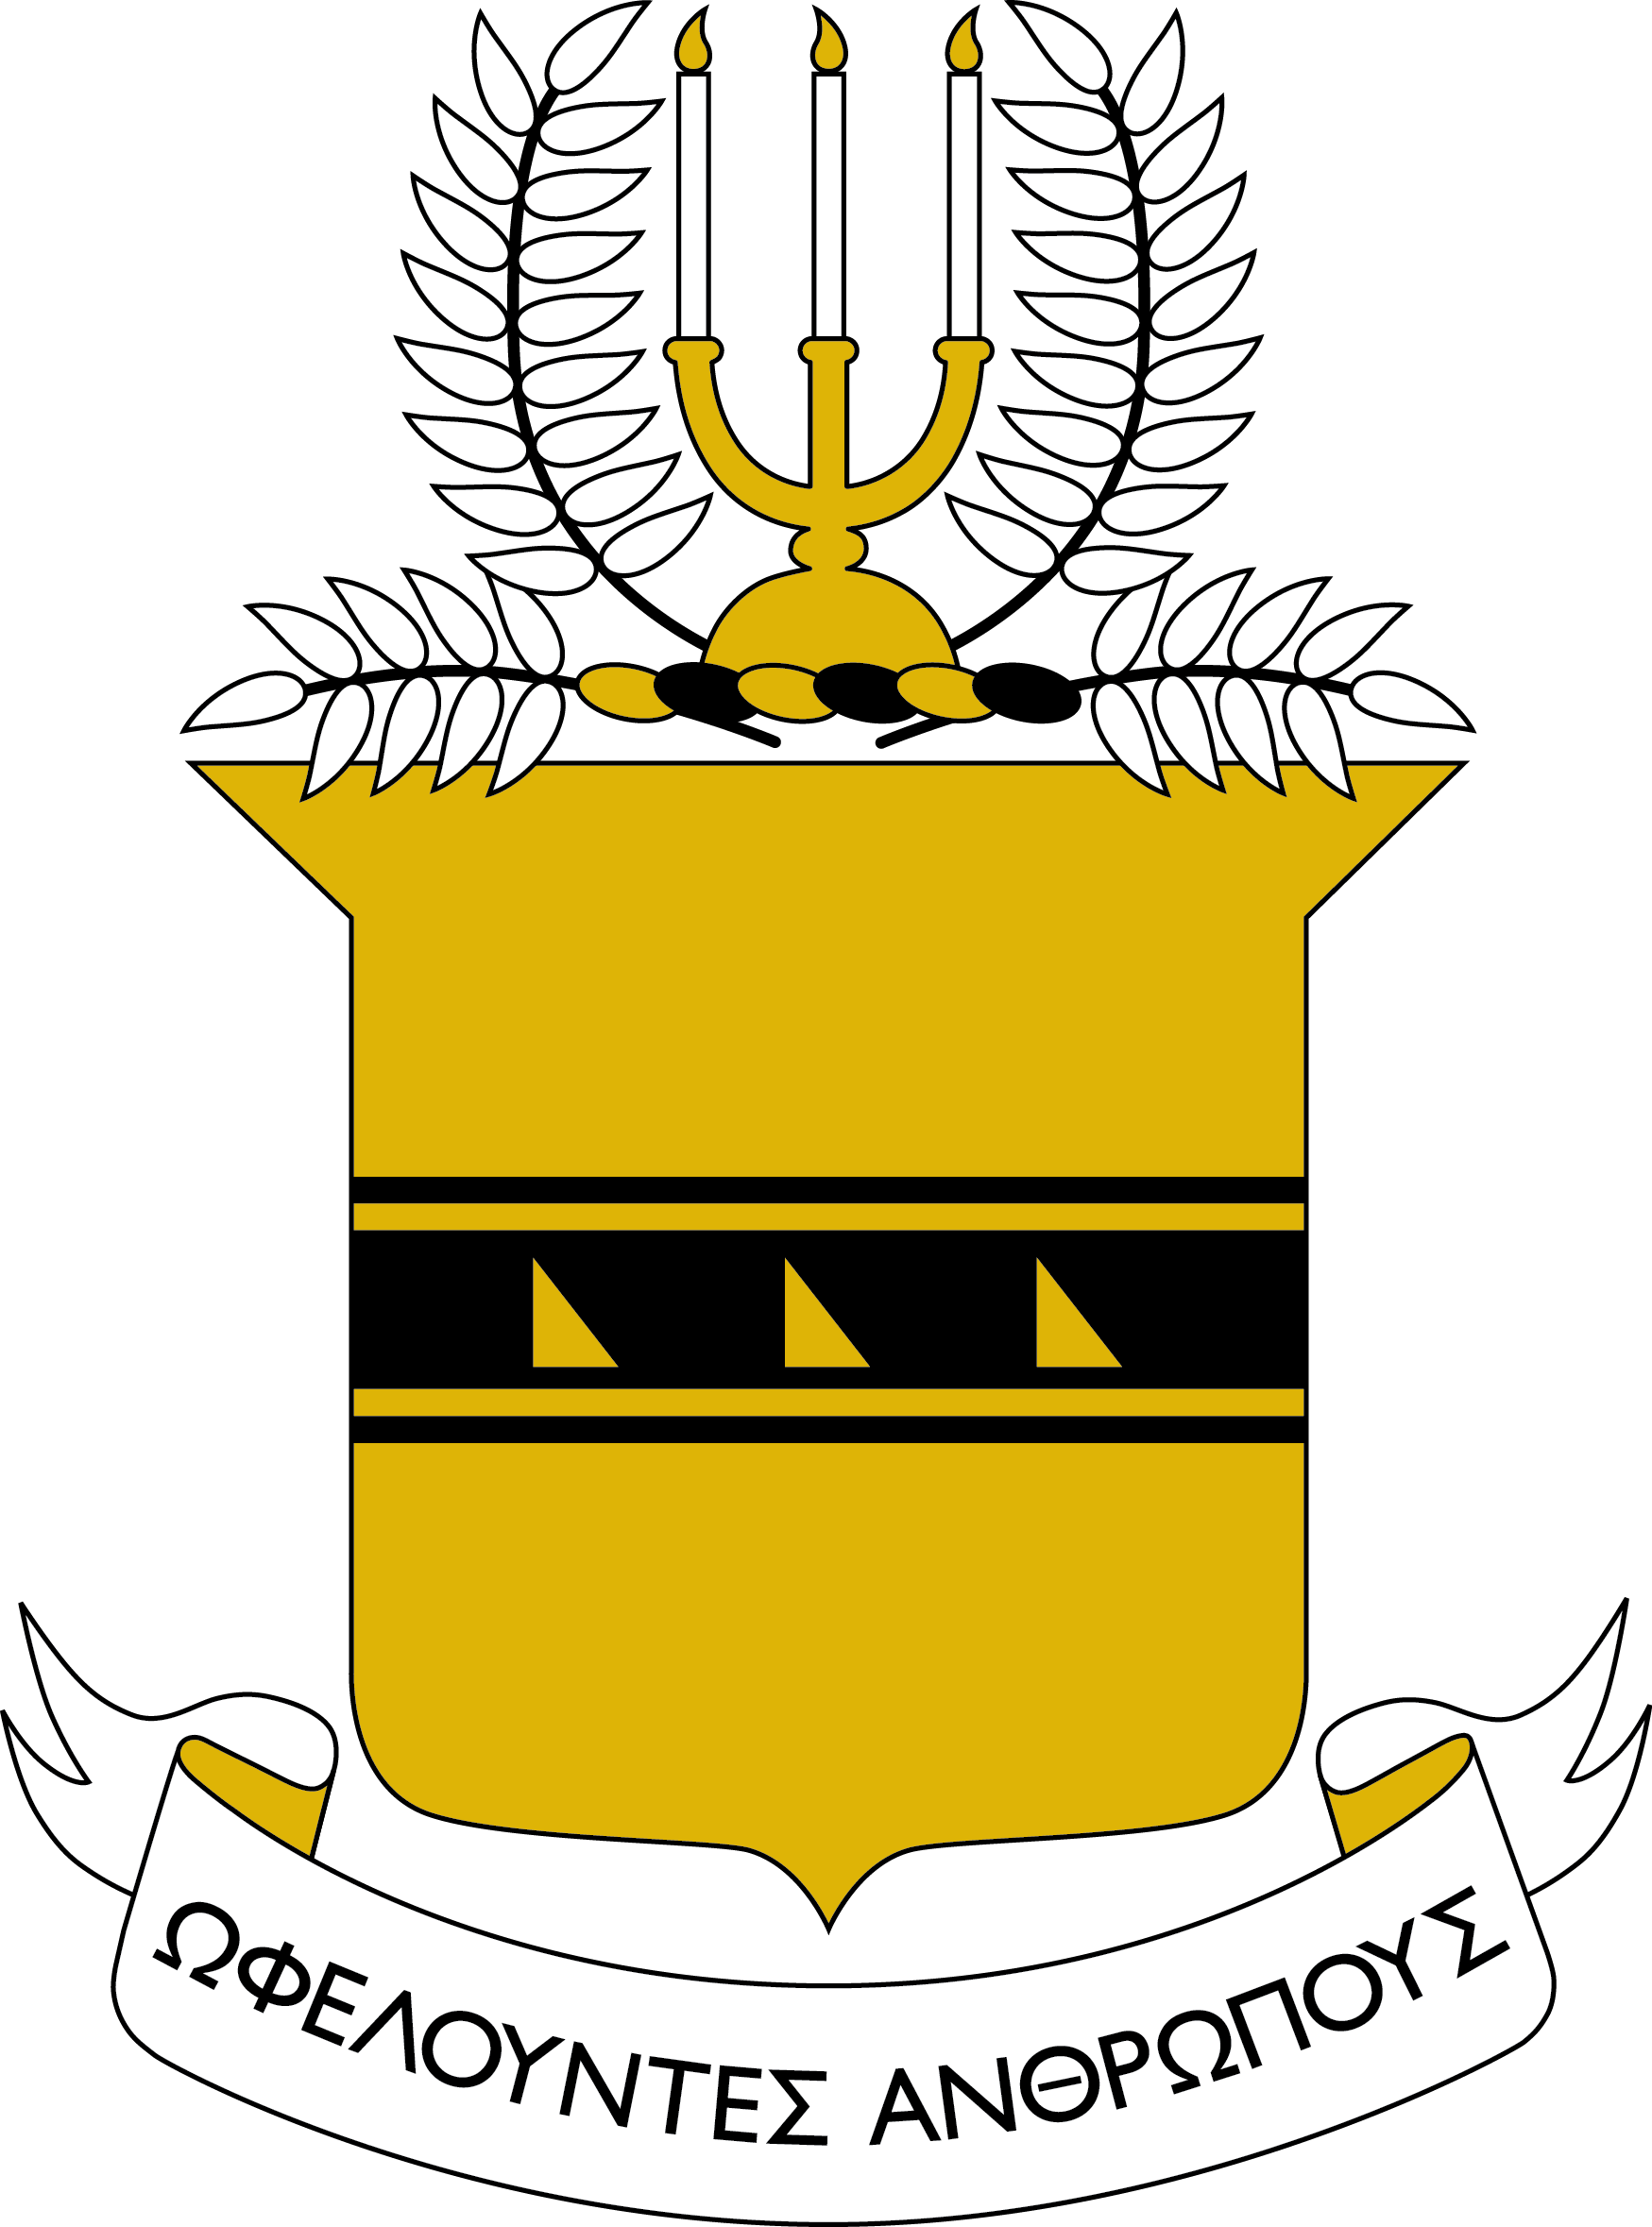 Graphics coat of arms acacia fraternity 2 color eps png buycottarizona Image collections